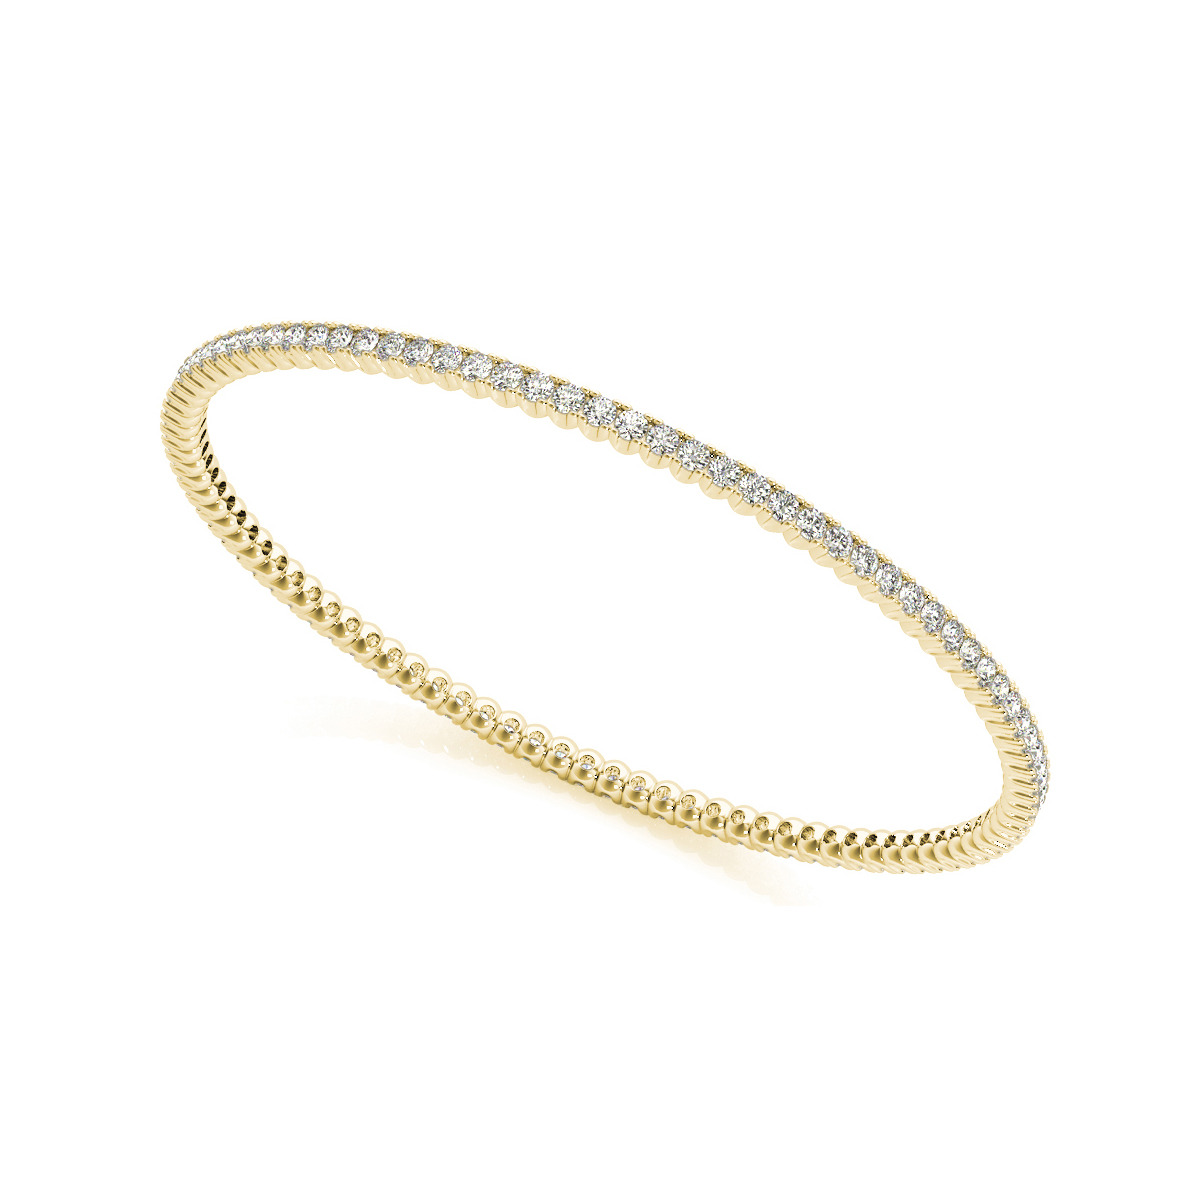 18k-yellow-gold-traditional-bangles-and-bracelet-70010